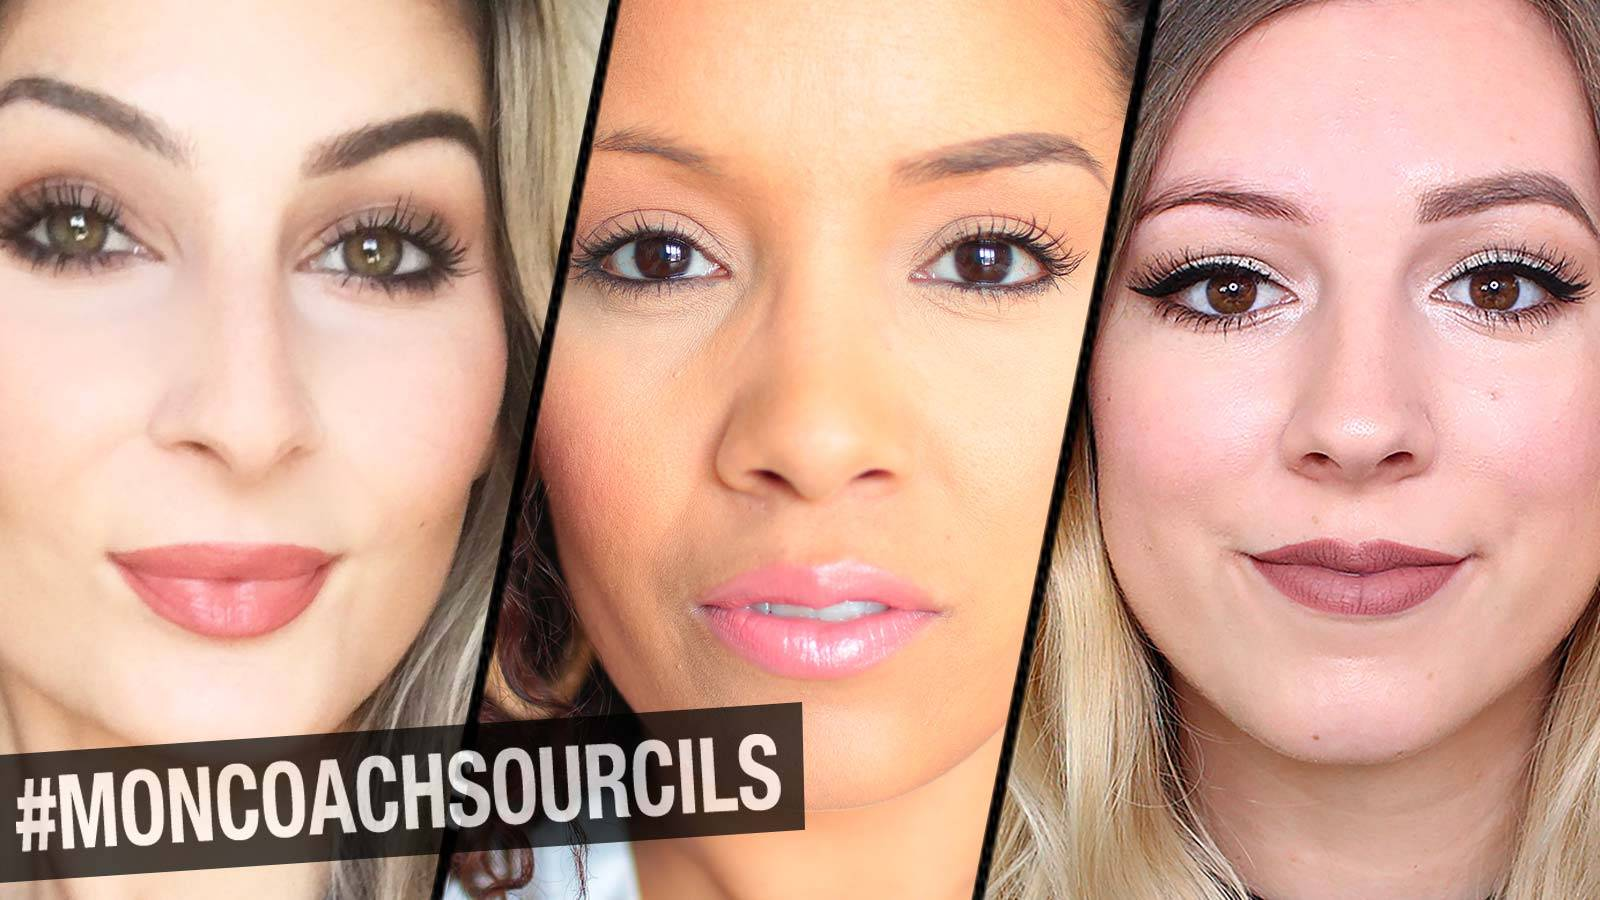 maybelline-mashup-mon-coach-sourcils-video-16x9